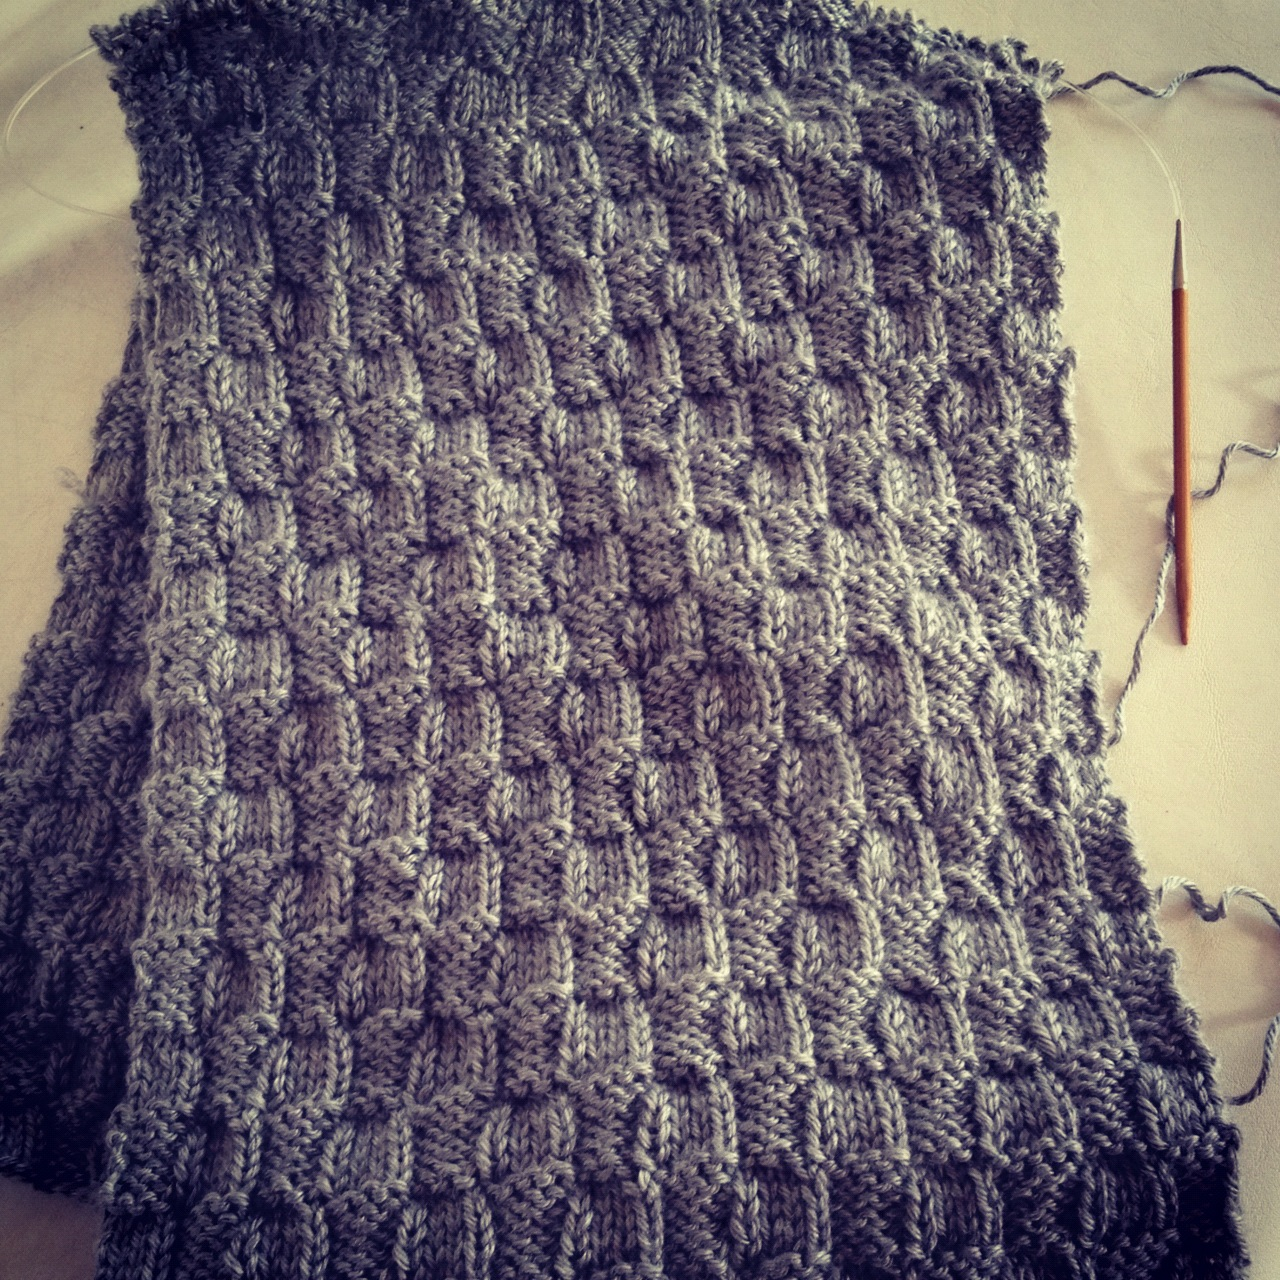 Hey, Show Me Your Knits!